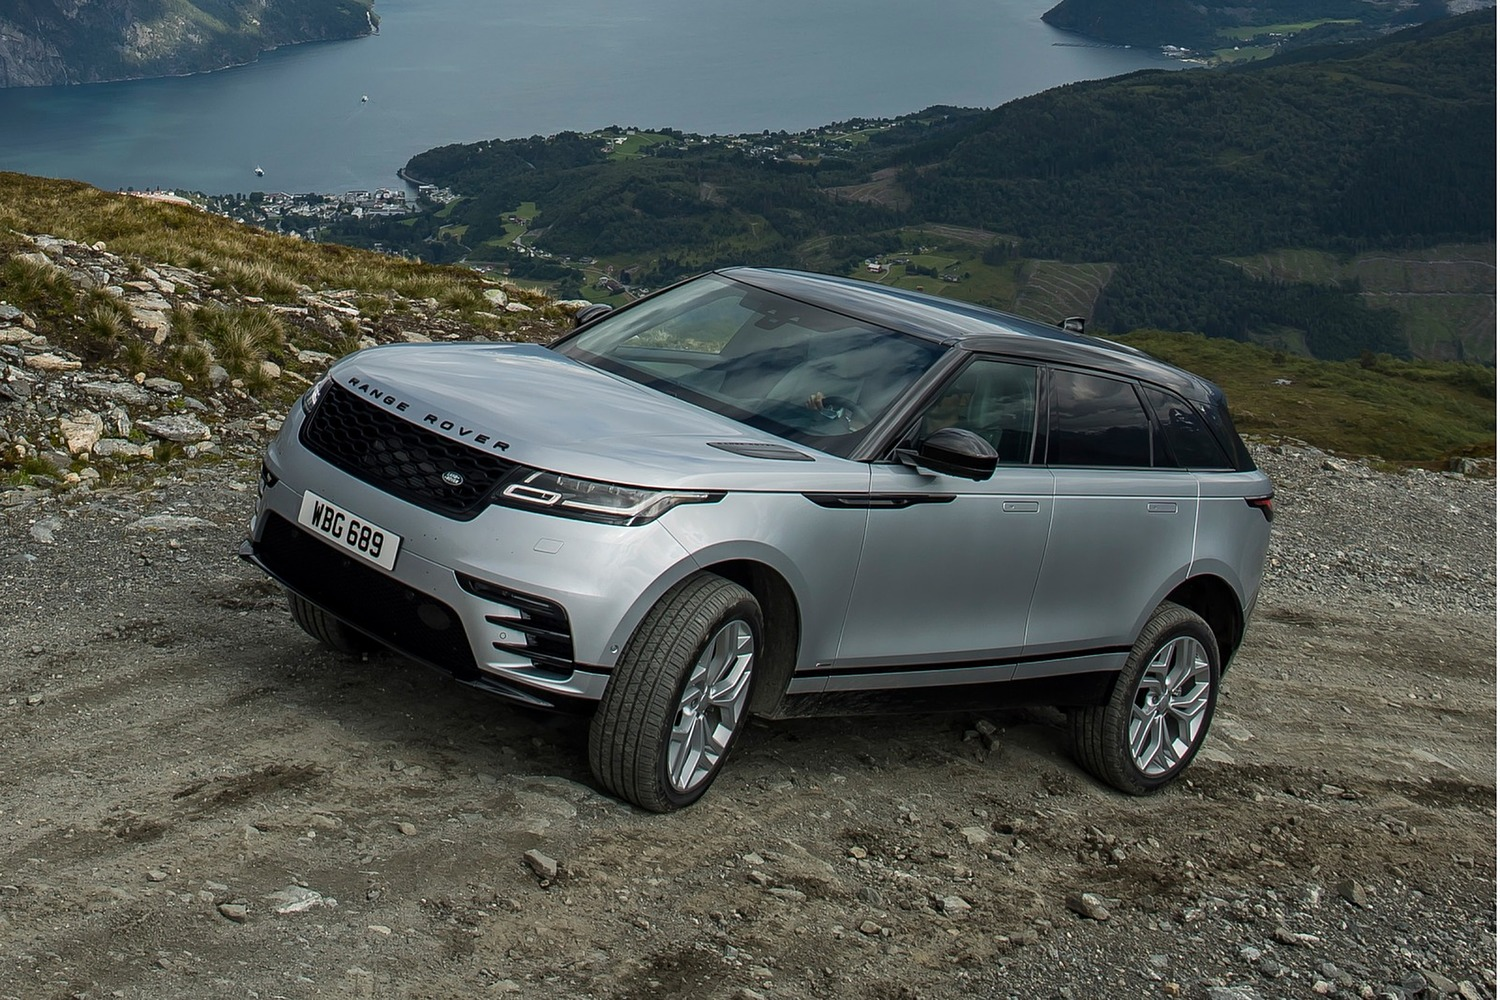 2018 Land Rover Range Rover Velar R-Dynamic HSE 4dr SUV Exterior Shown